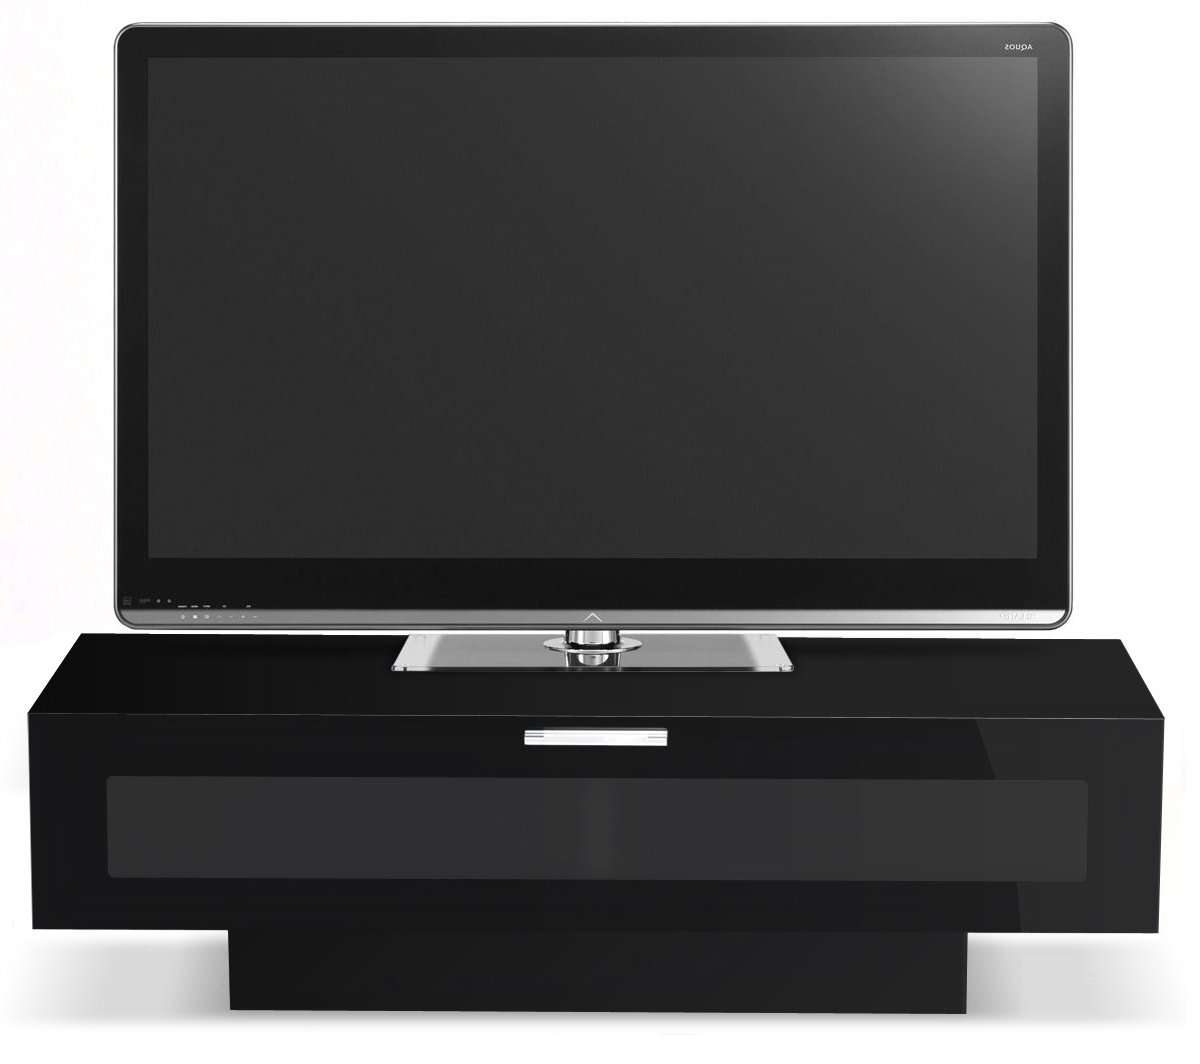 Stil Stand Stuk 4001 Bl – 1 Tv Stands Throughout Stil Tv Stands (View 15 of 20)